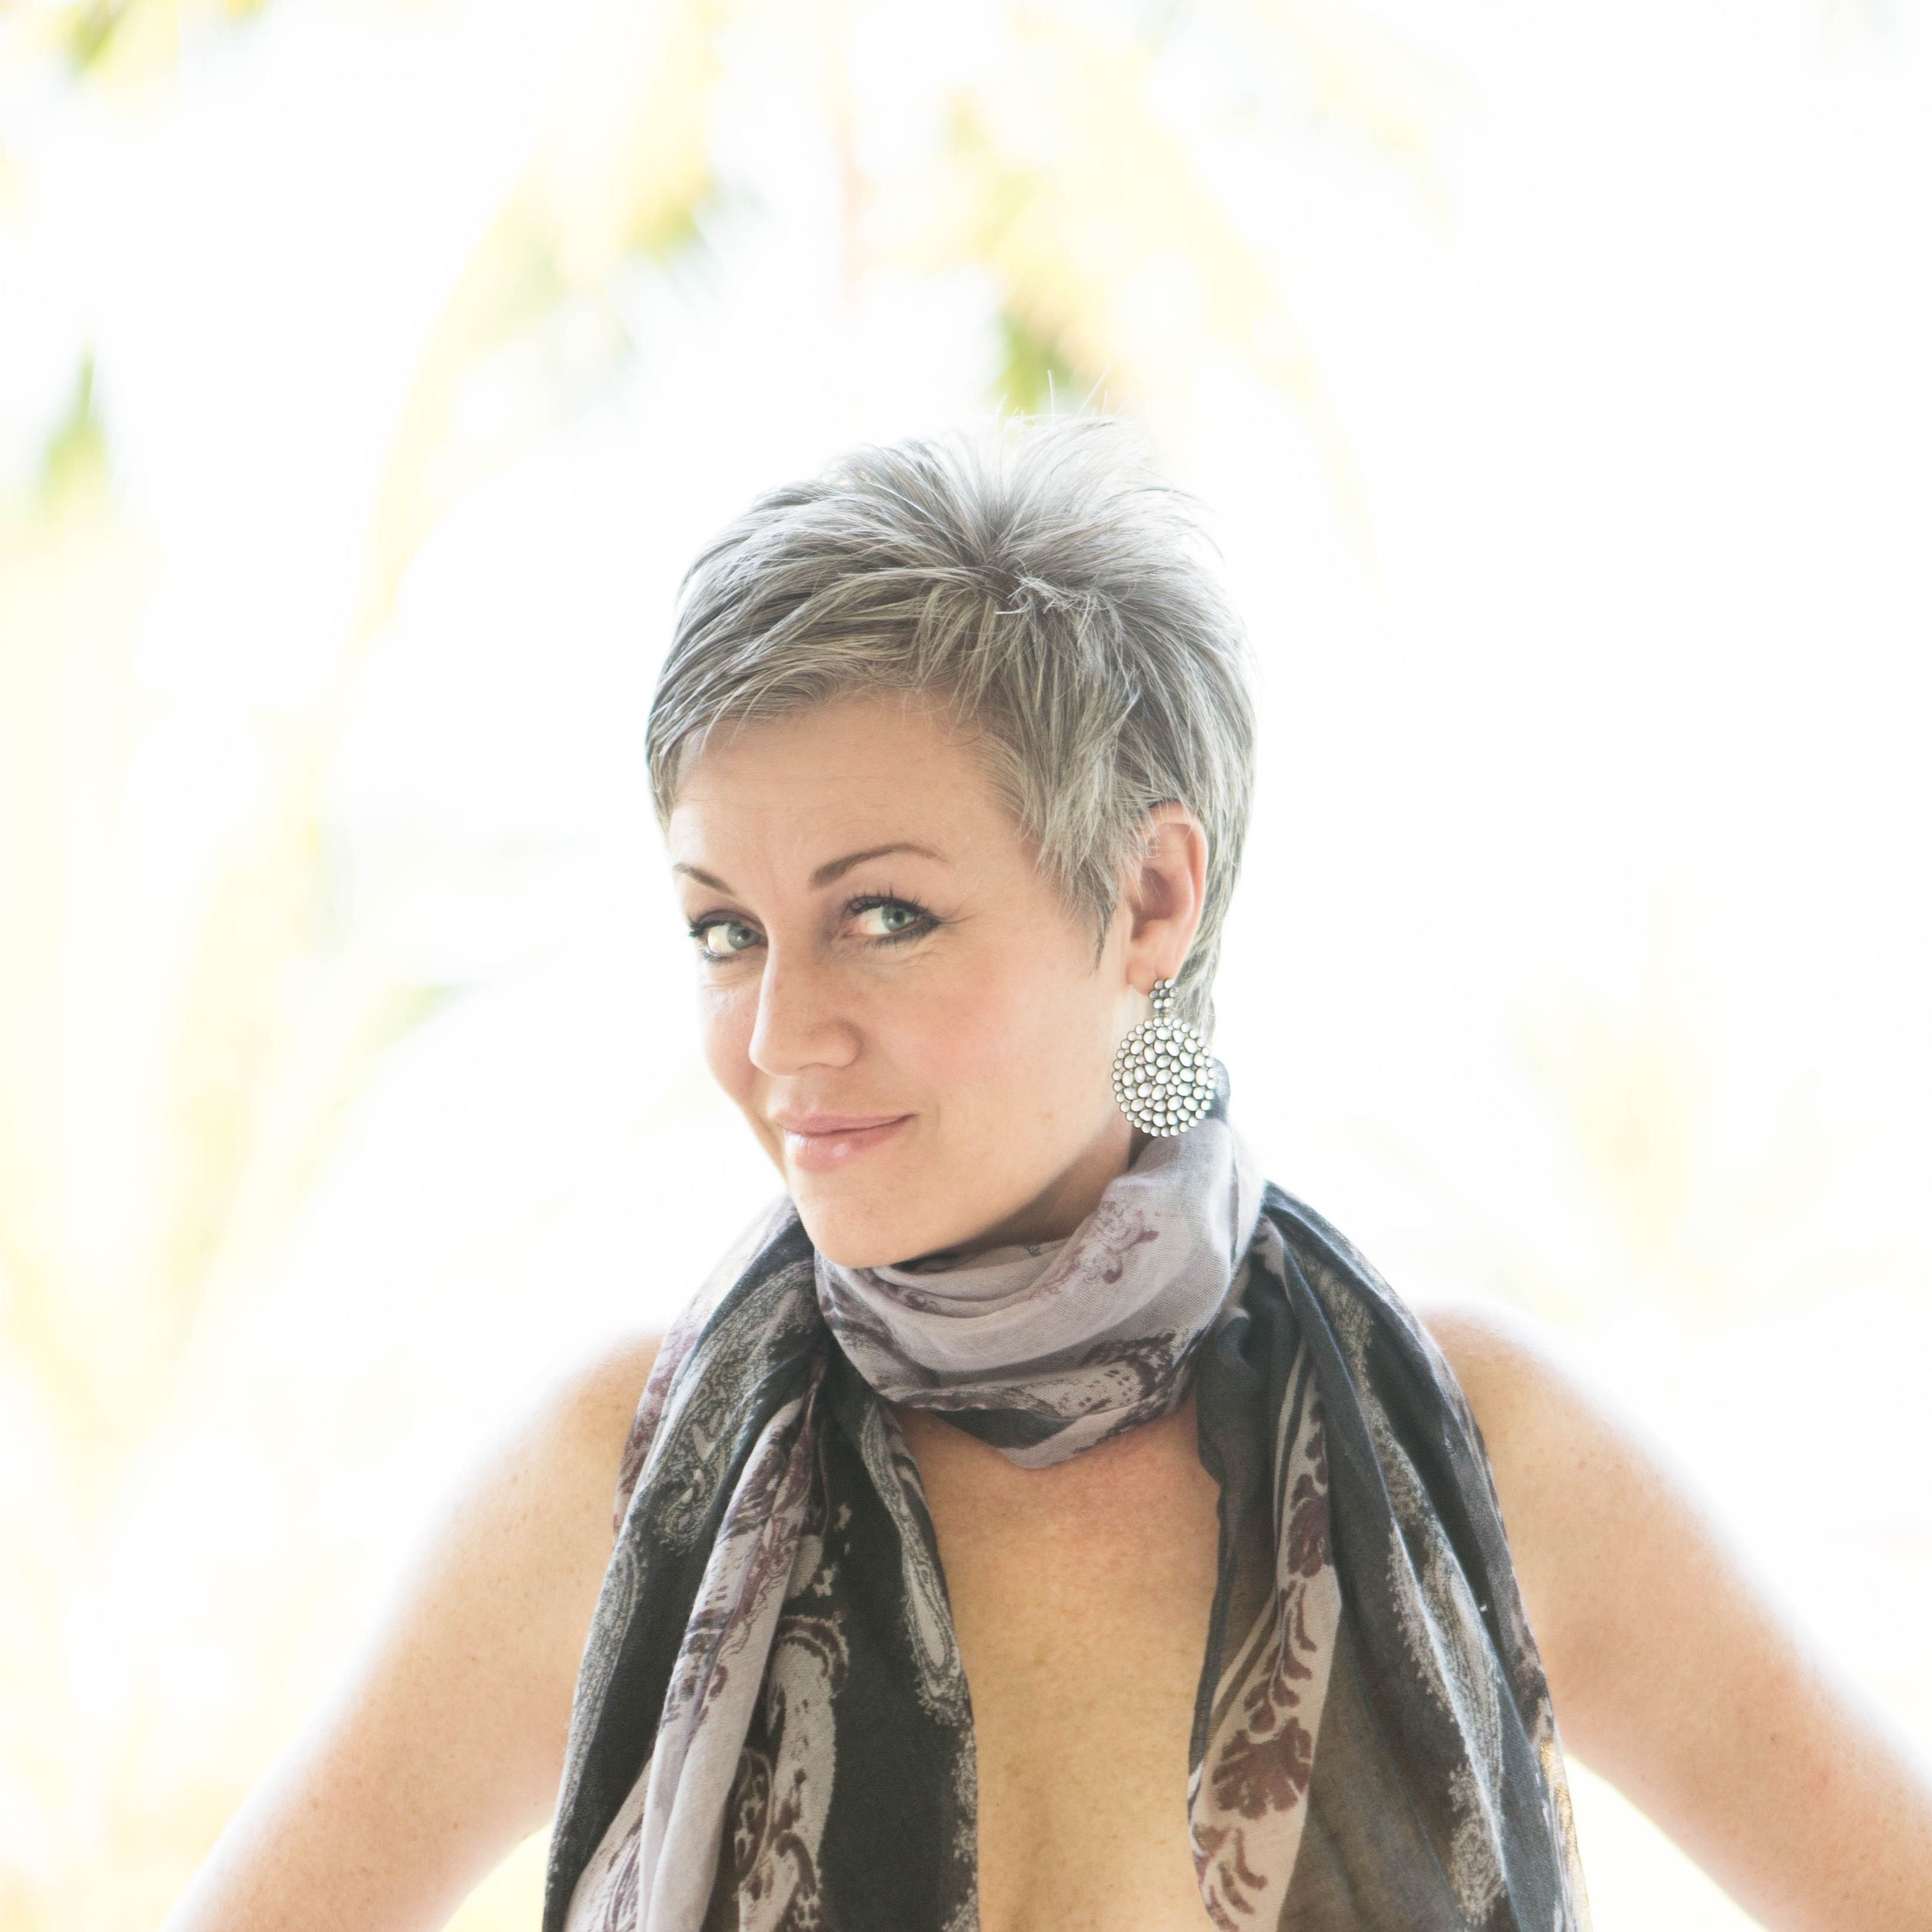 #shortgreyhair #pixie #lettingitgrow